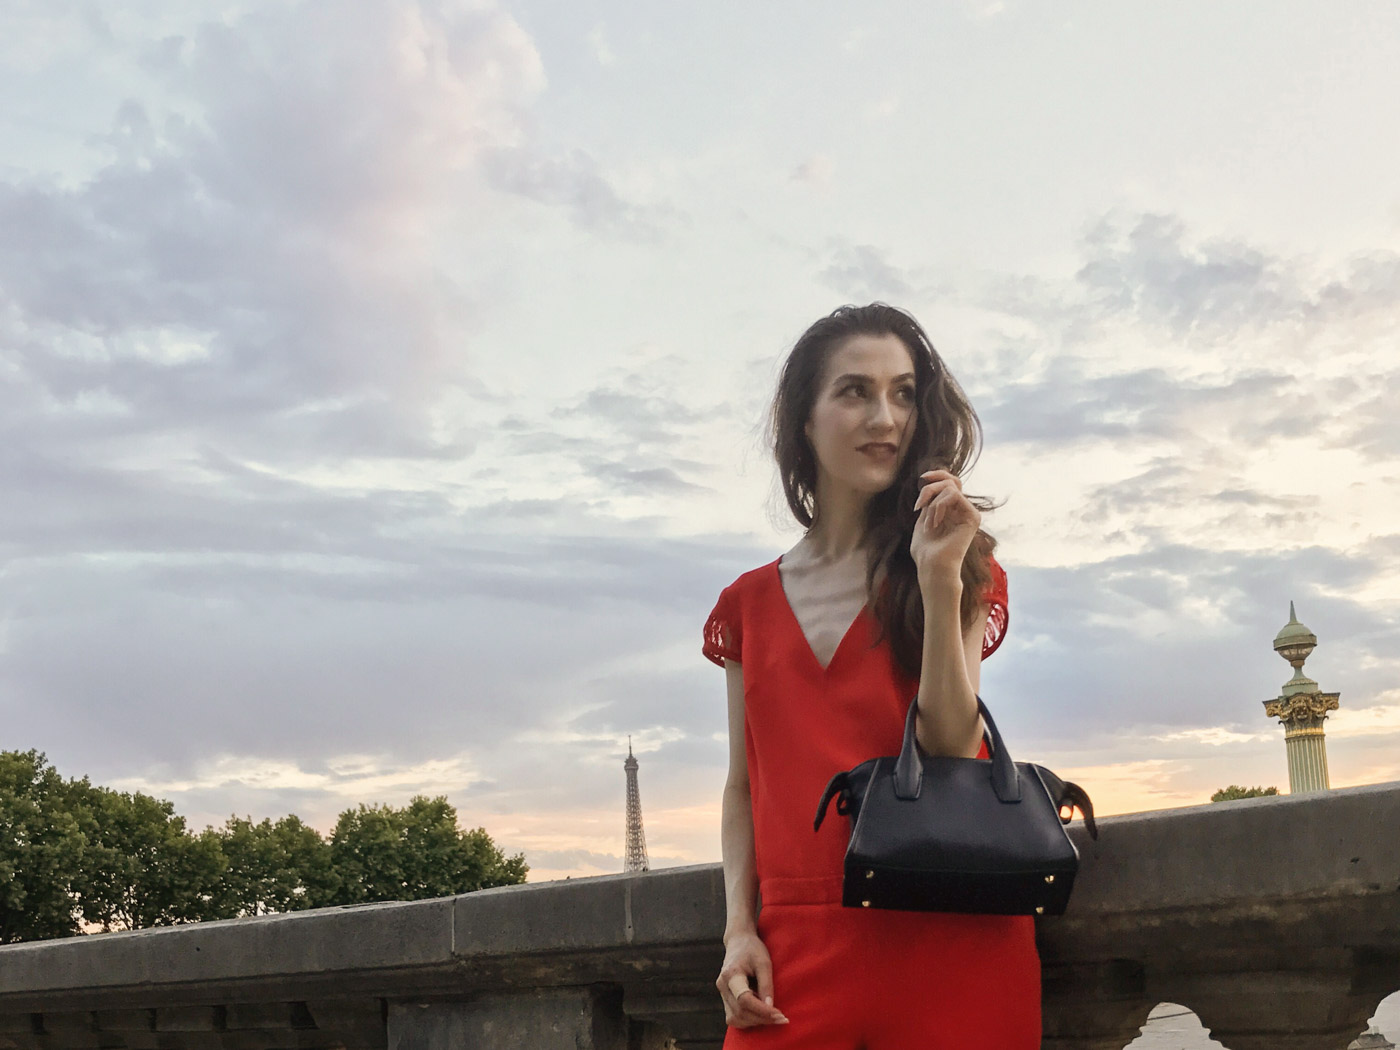 Fashion Blogger Veronika Lipar of Brunette from Wall Street standing by the Eiffel Tower in the red outfit